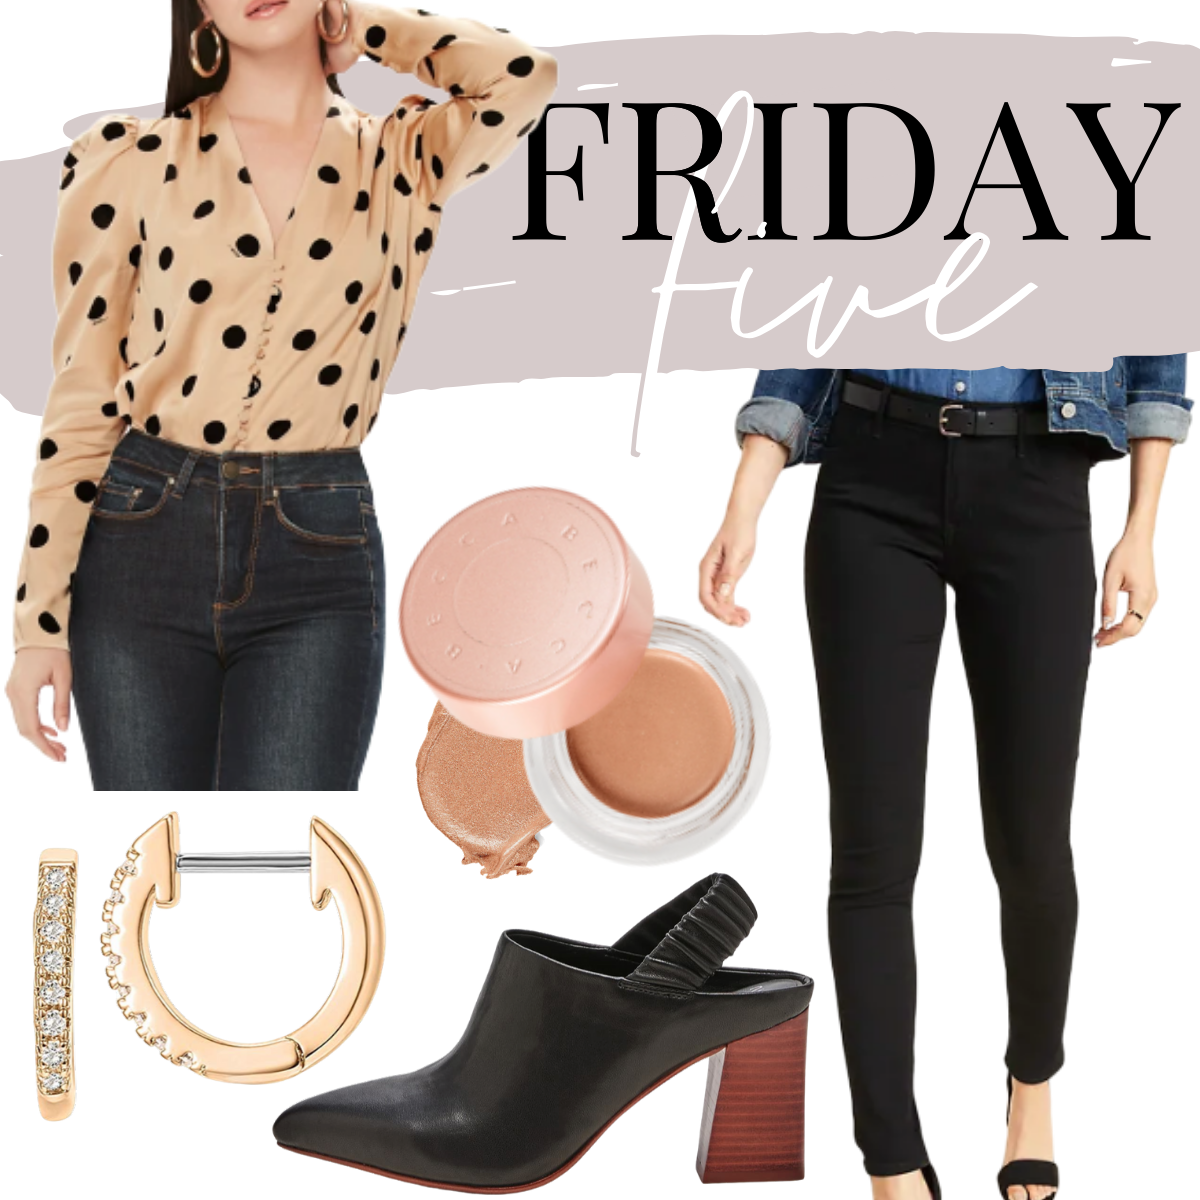 date night | Friday Favorites by Houston life and style blog, Haute and Humid: collage image of a polka dot blouse, black skinny jeans, huggie stud hoop earrings, sling back pumps and under eye brightening corrector.